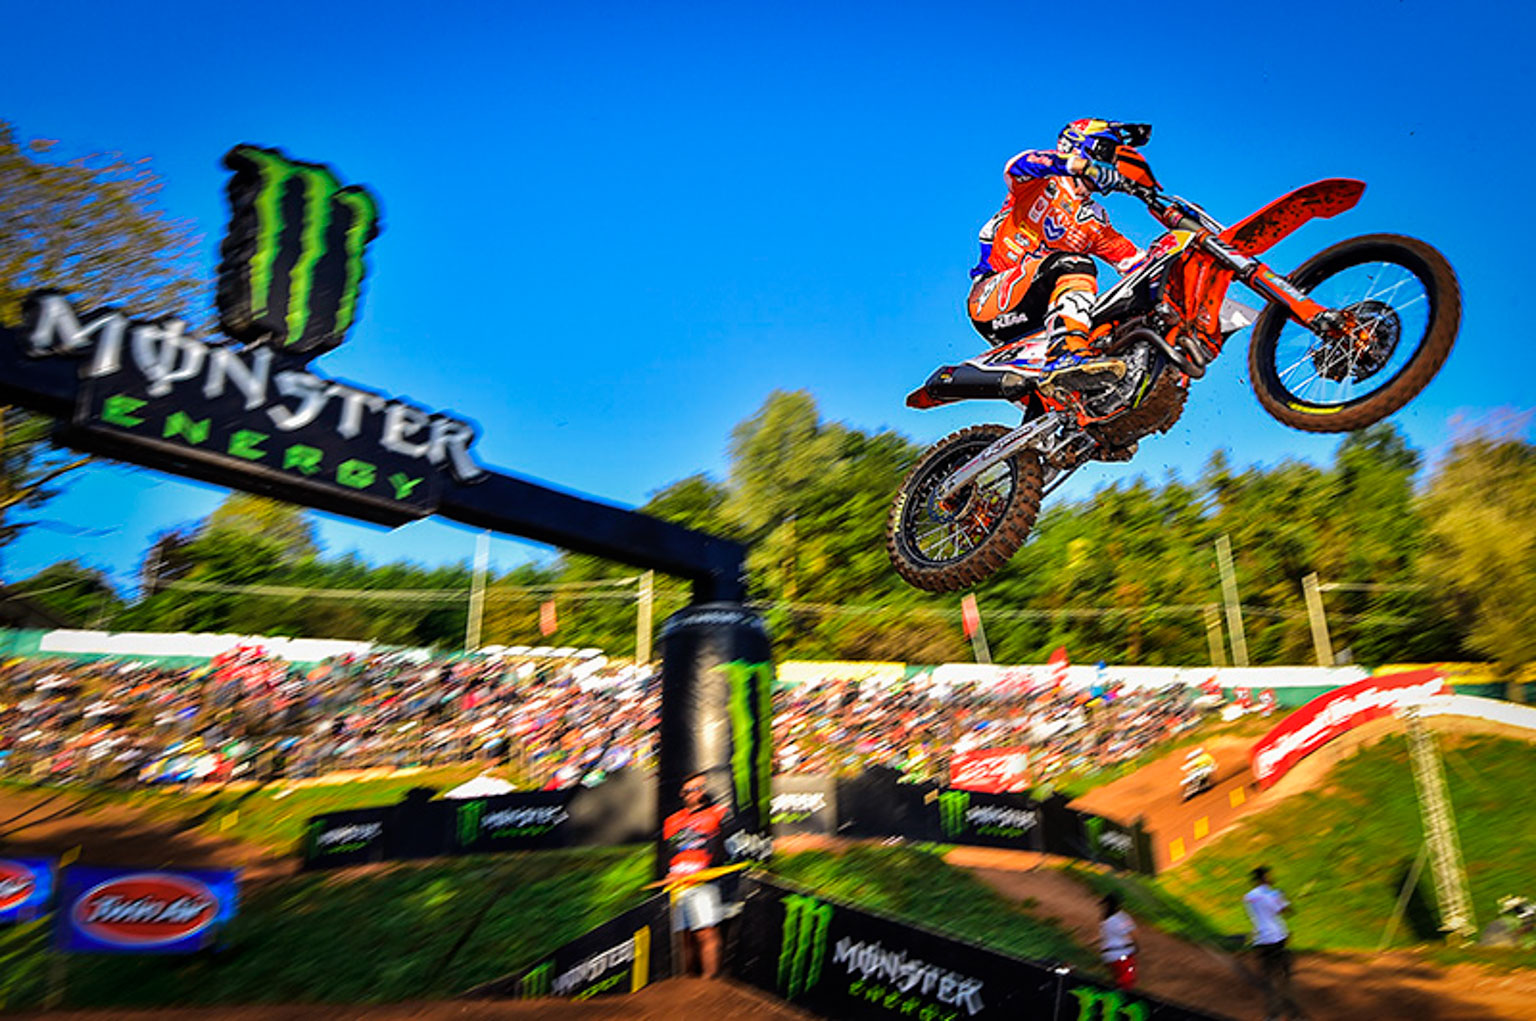 Jeffrey Herlings is one of Team KTM